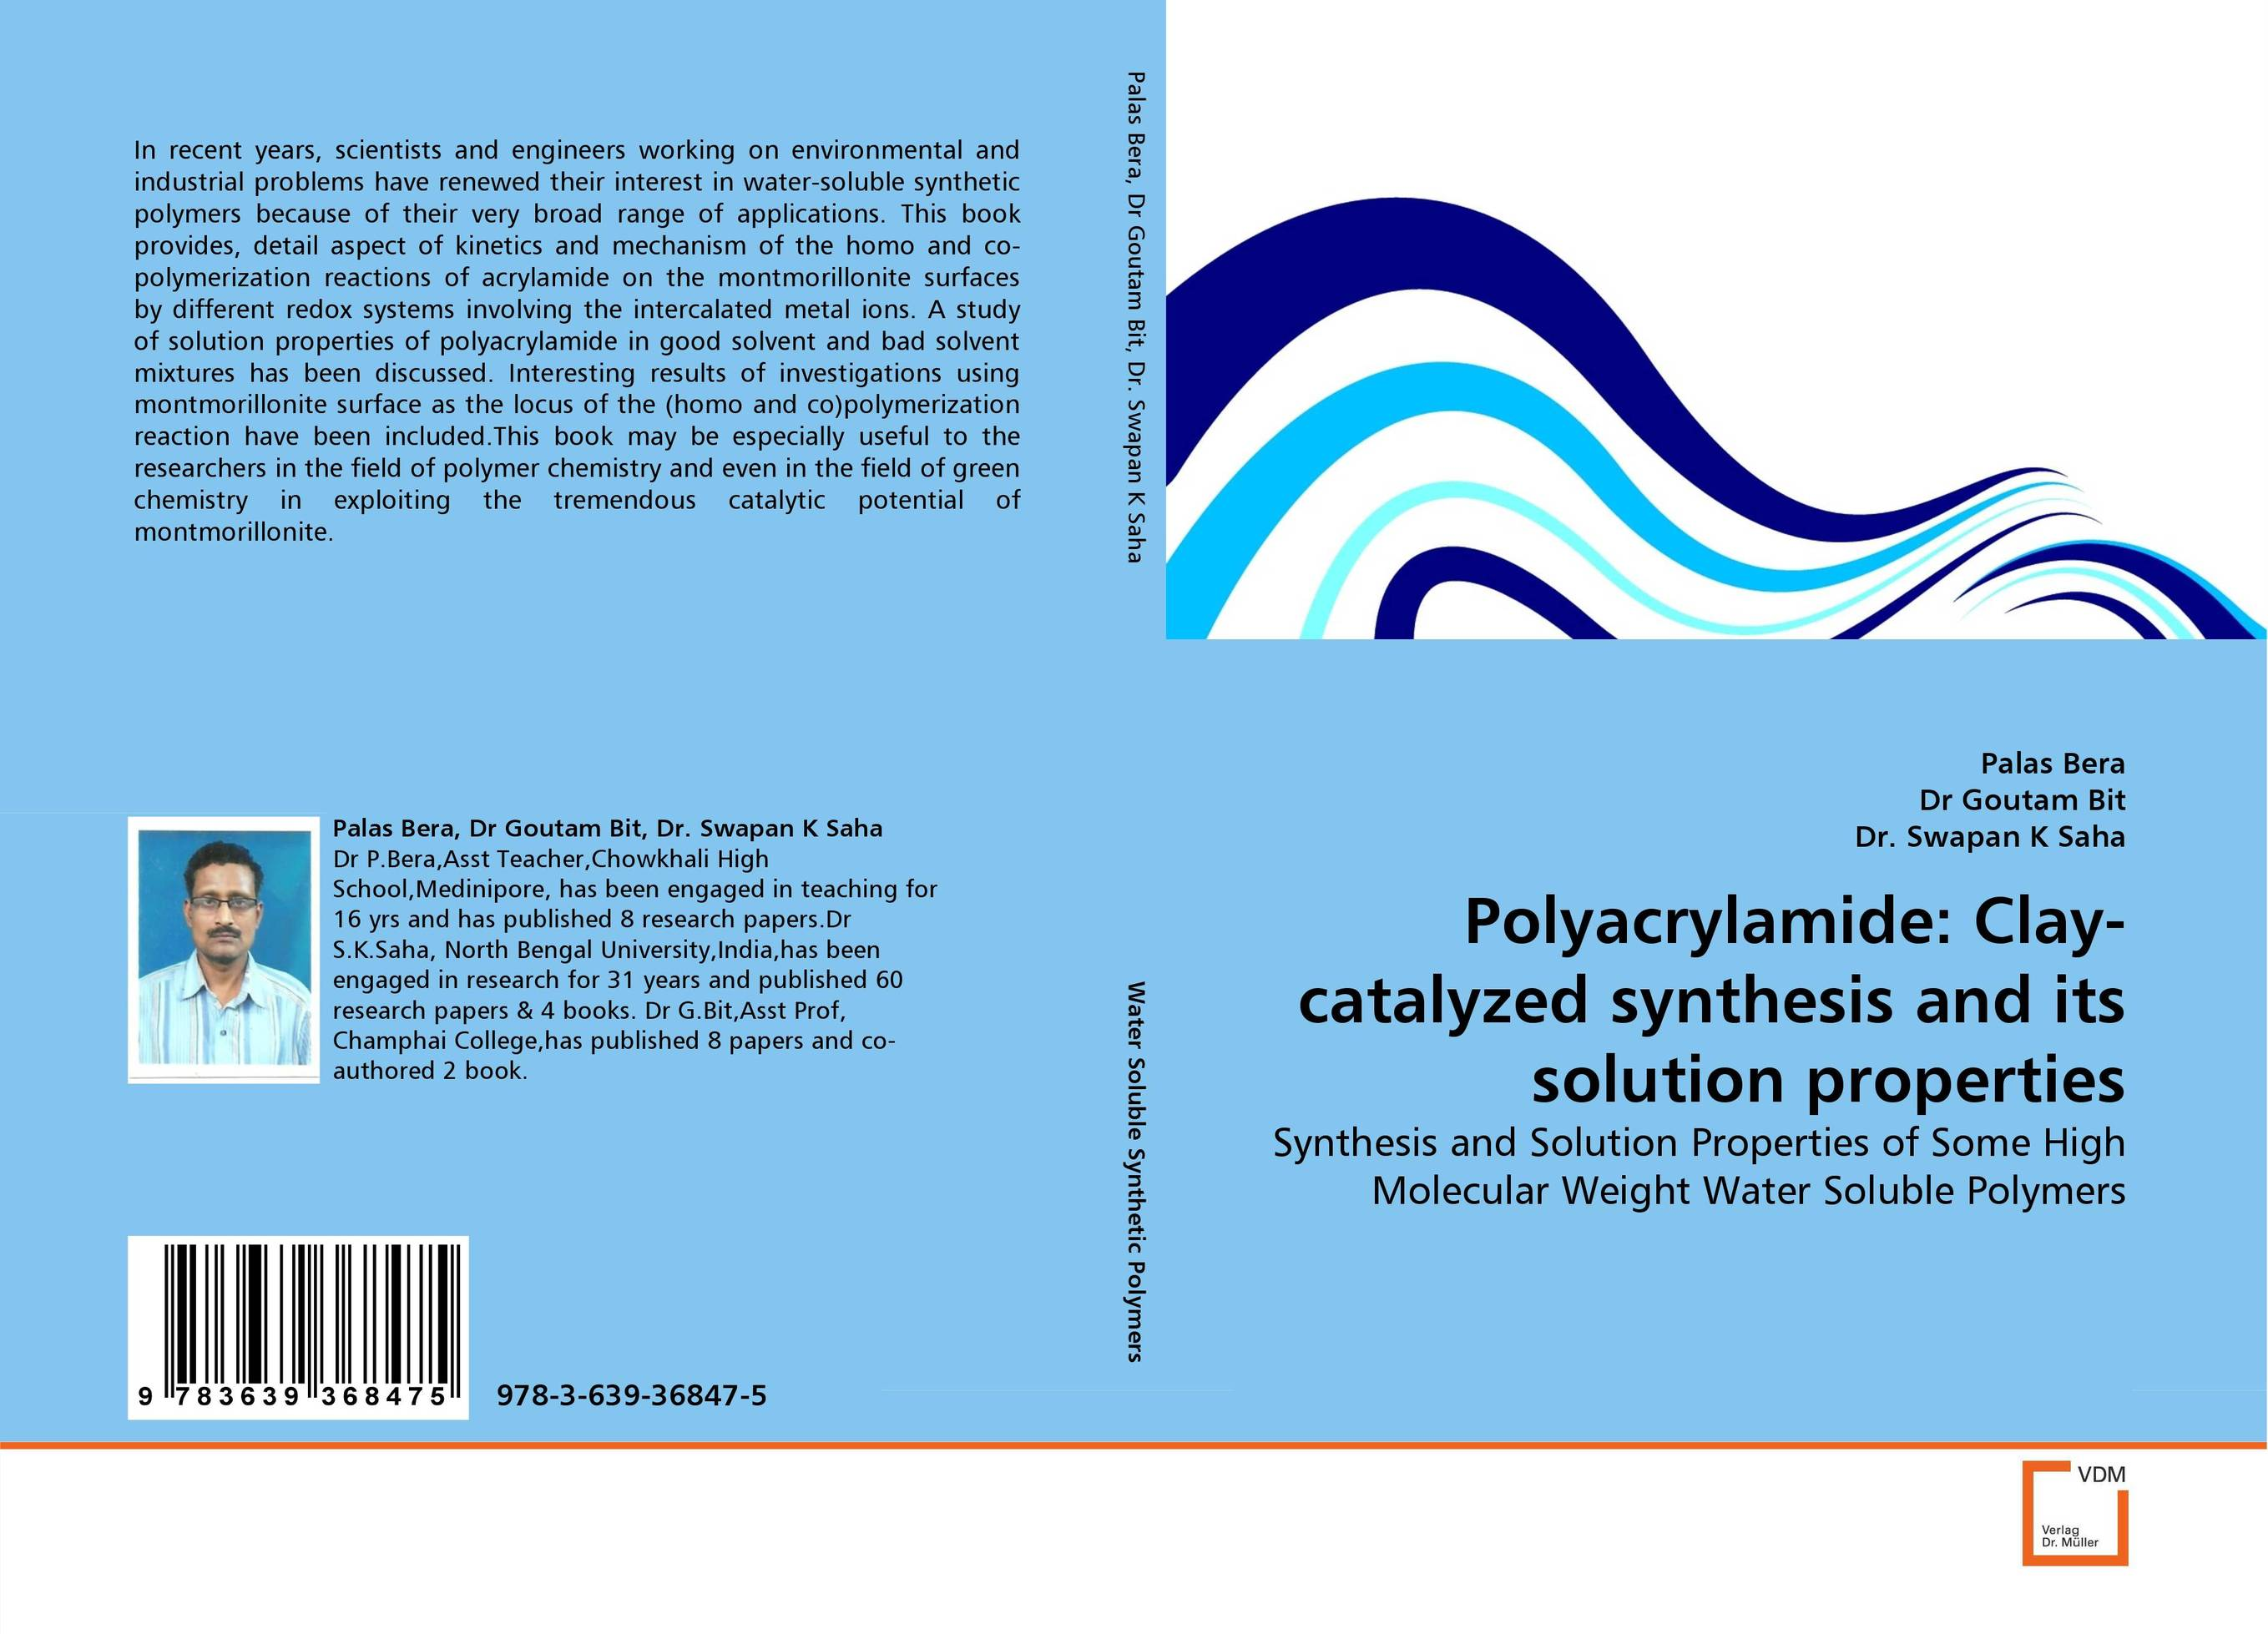 Polyacrylamide: Clay-catalyzed synthesis and its solution properties d beskrovniy chemistry technology and properties of synthetic rubber